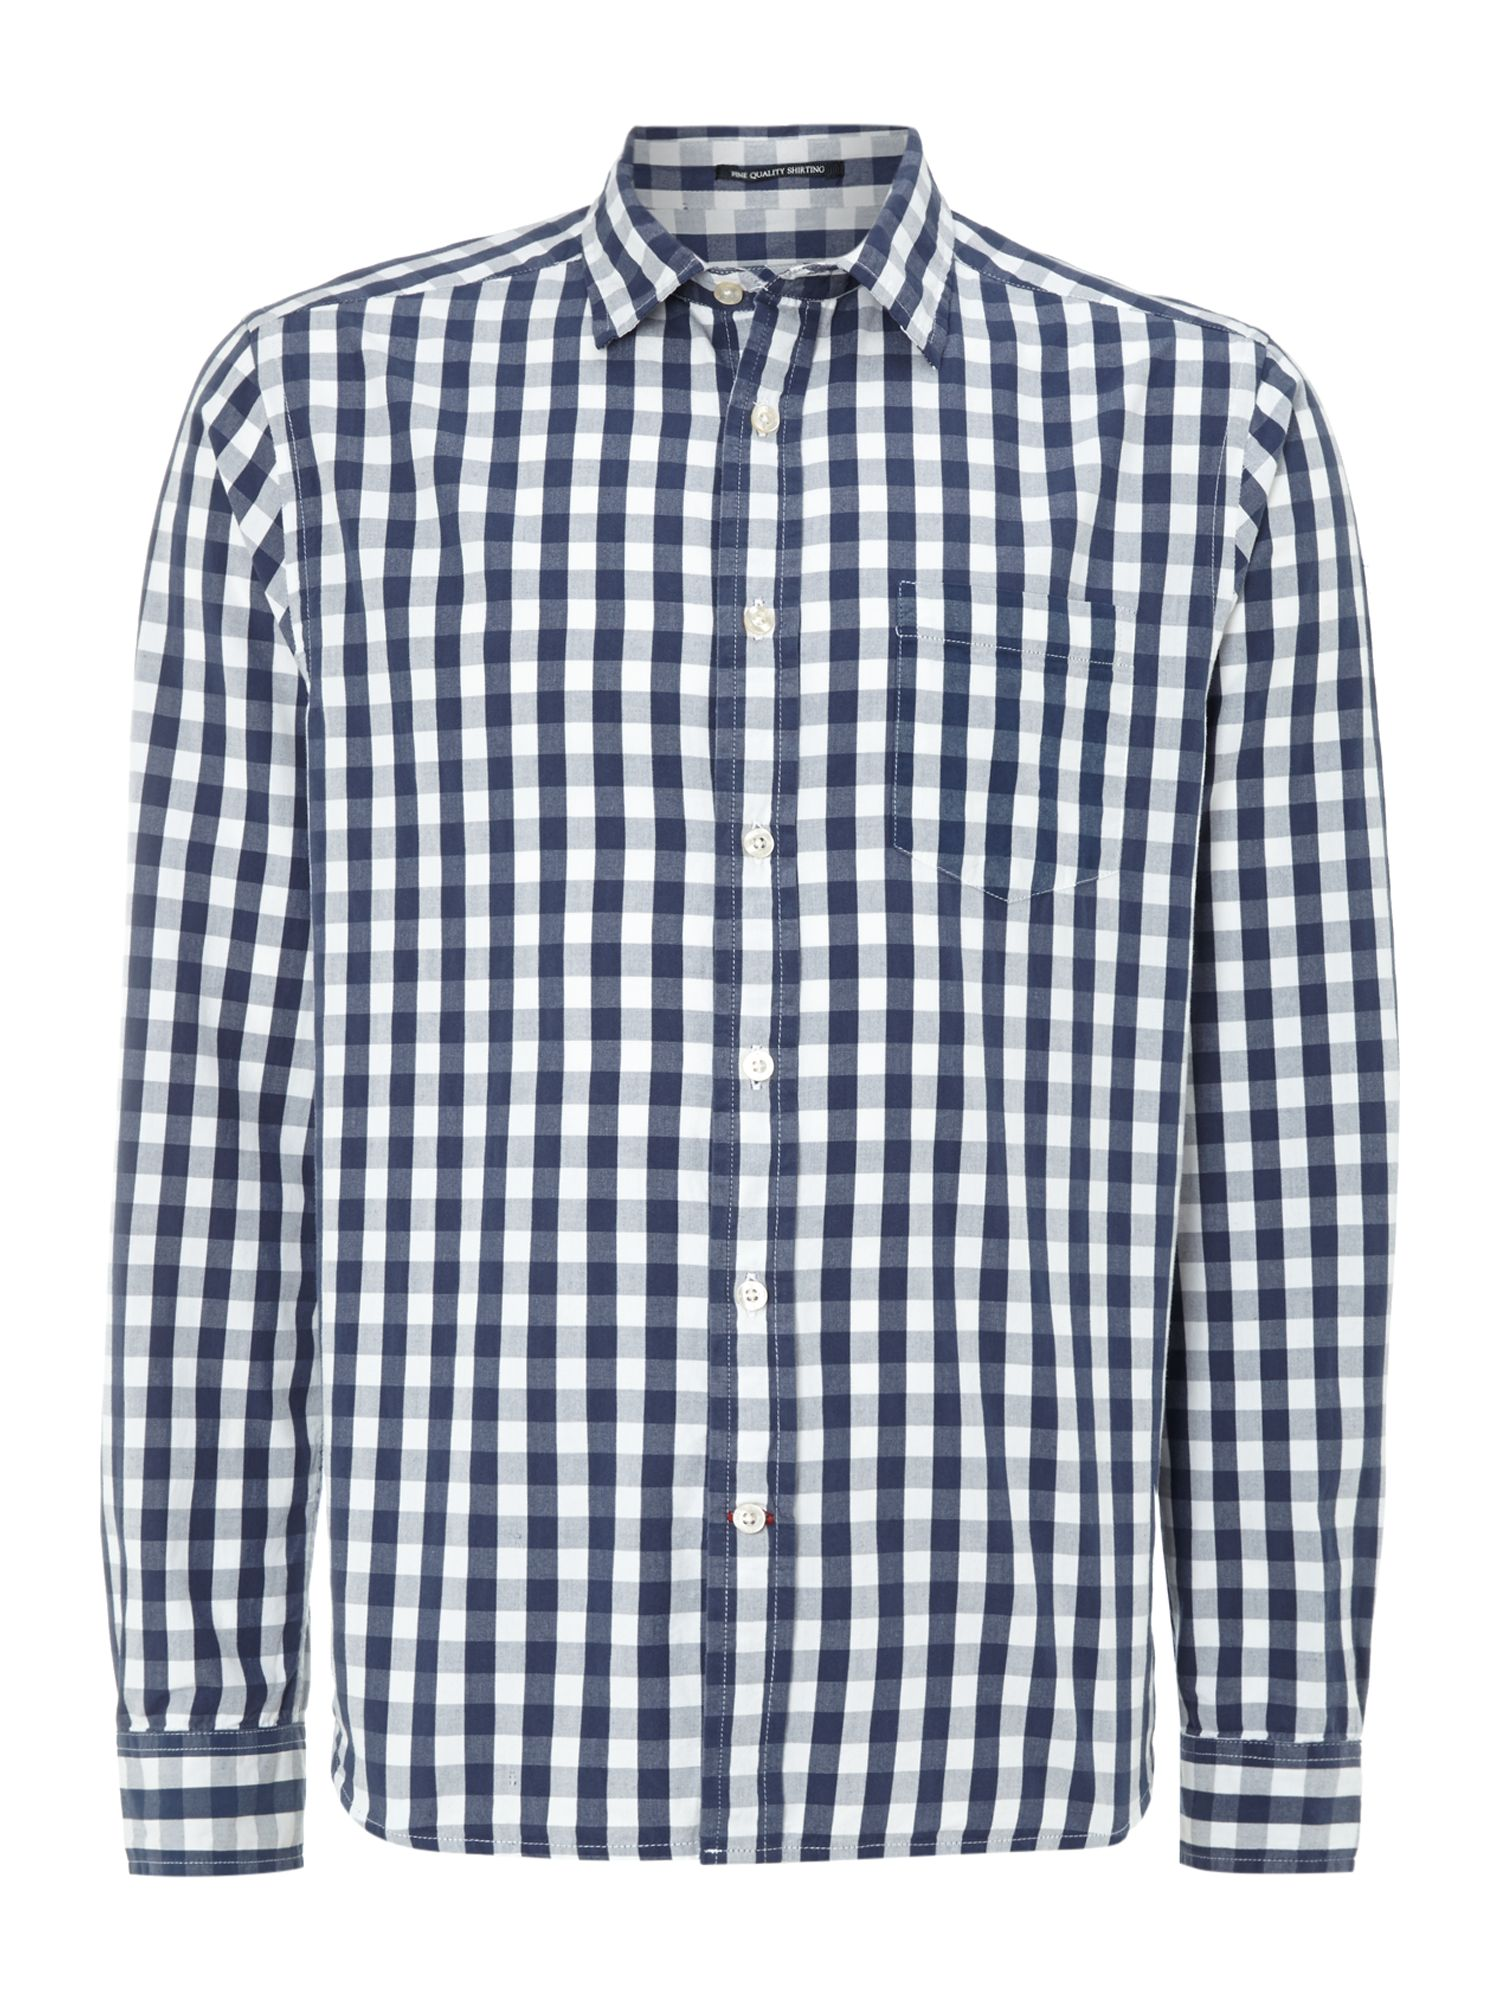 Riverside gingham check shirt